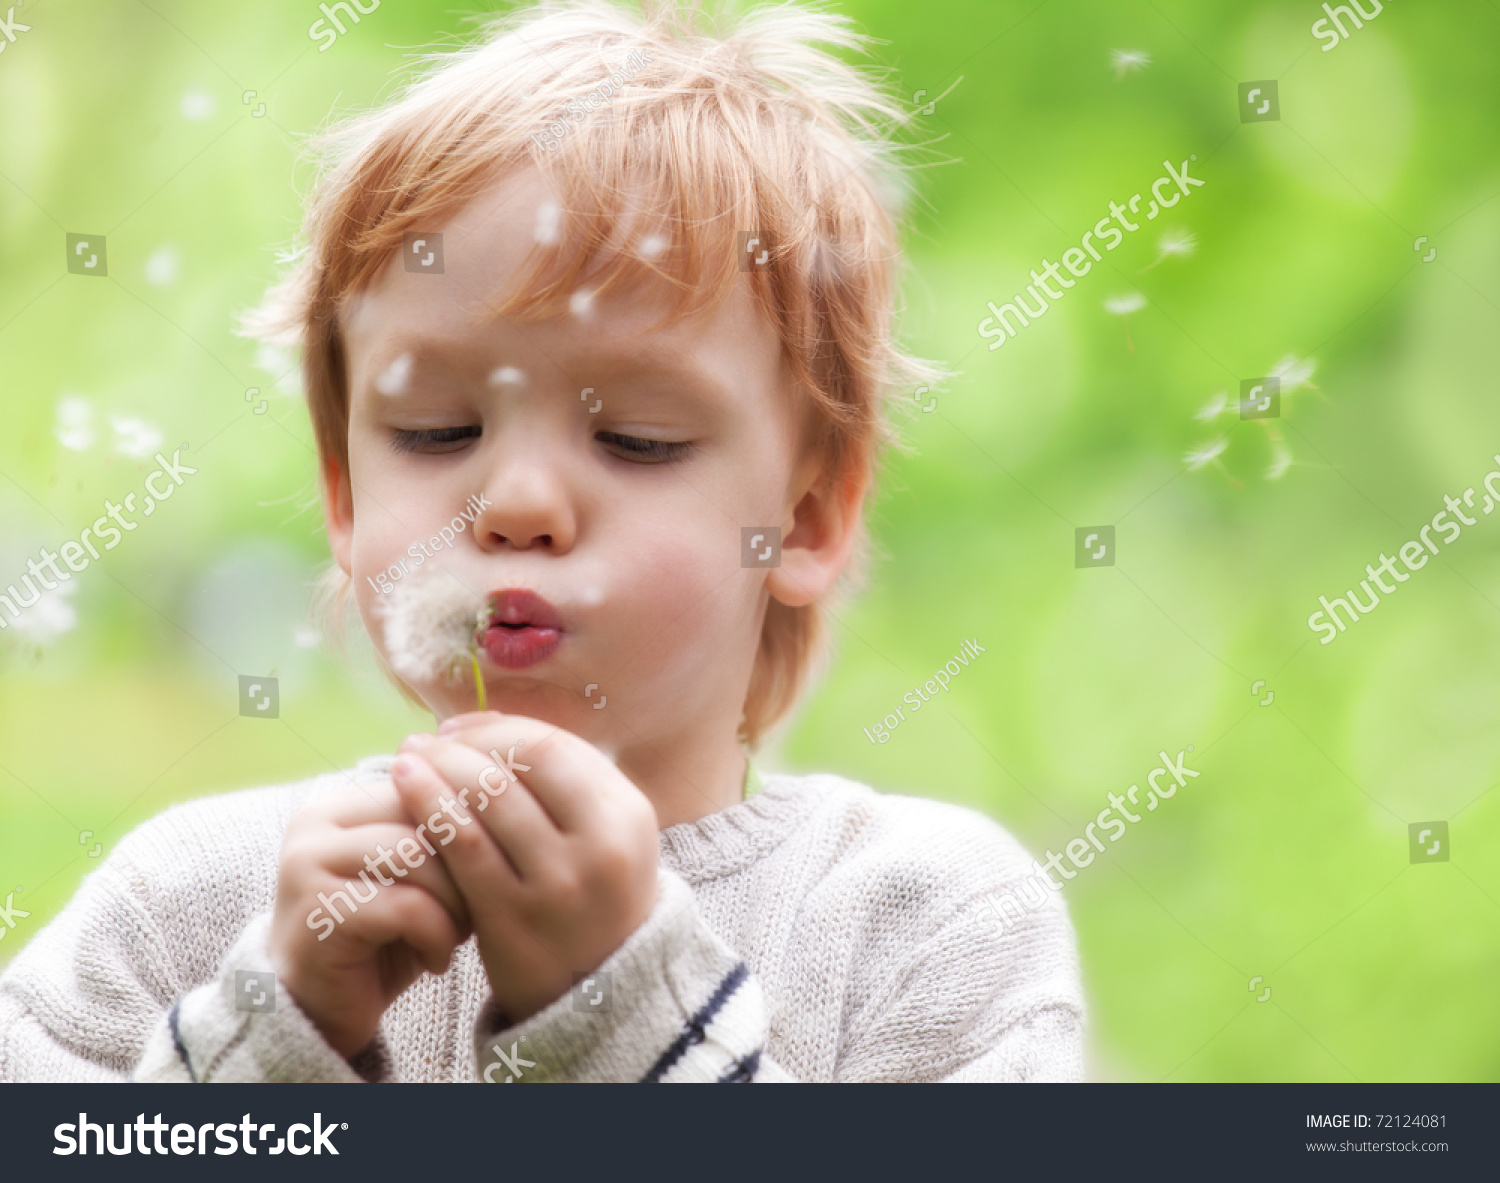 https://image.shutterstock.com/z/stock-photo-young-blond-kid-in-the-meadow-blowing-wishes-on-dandelion-seed-72124081.jpg